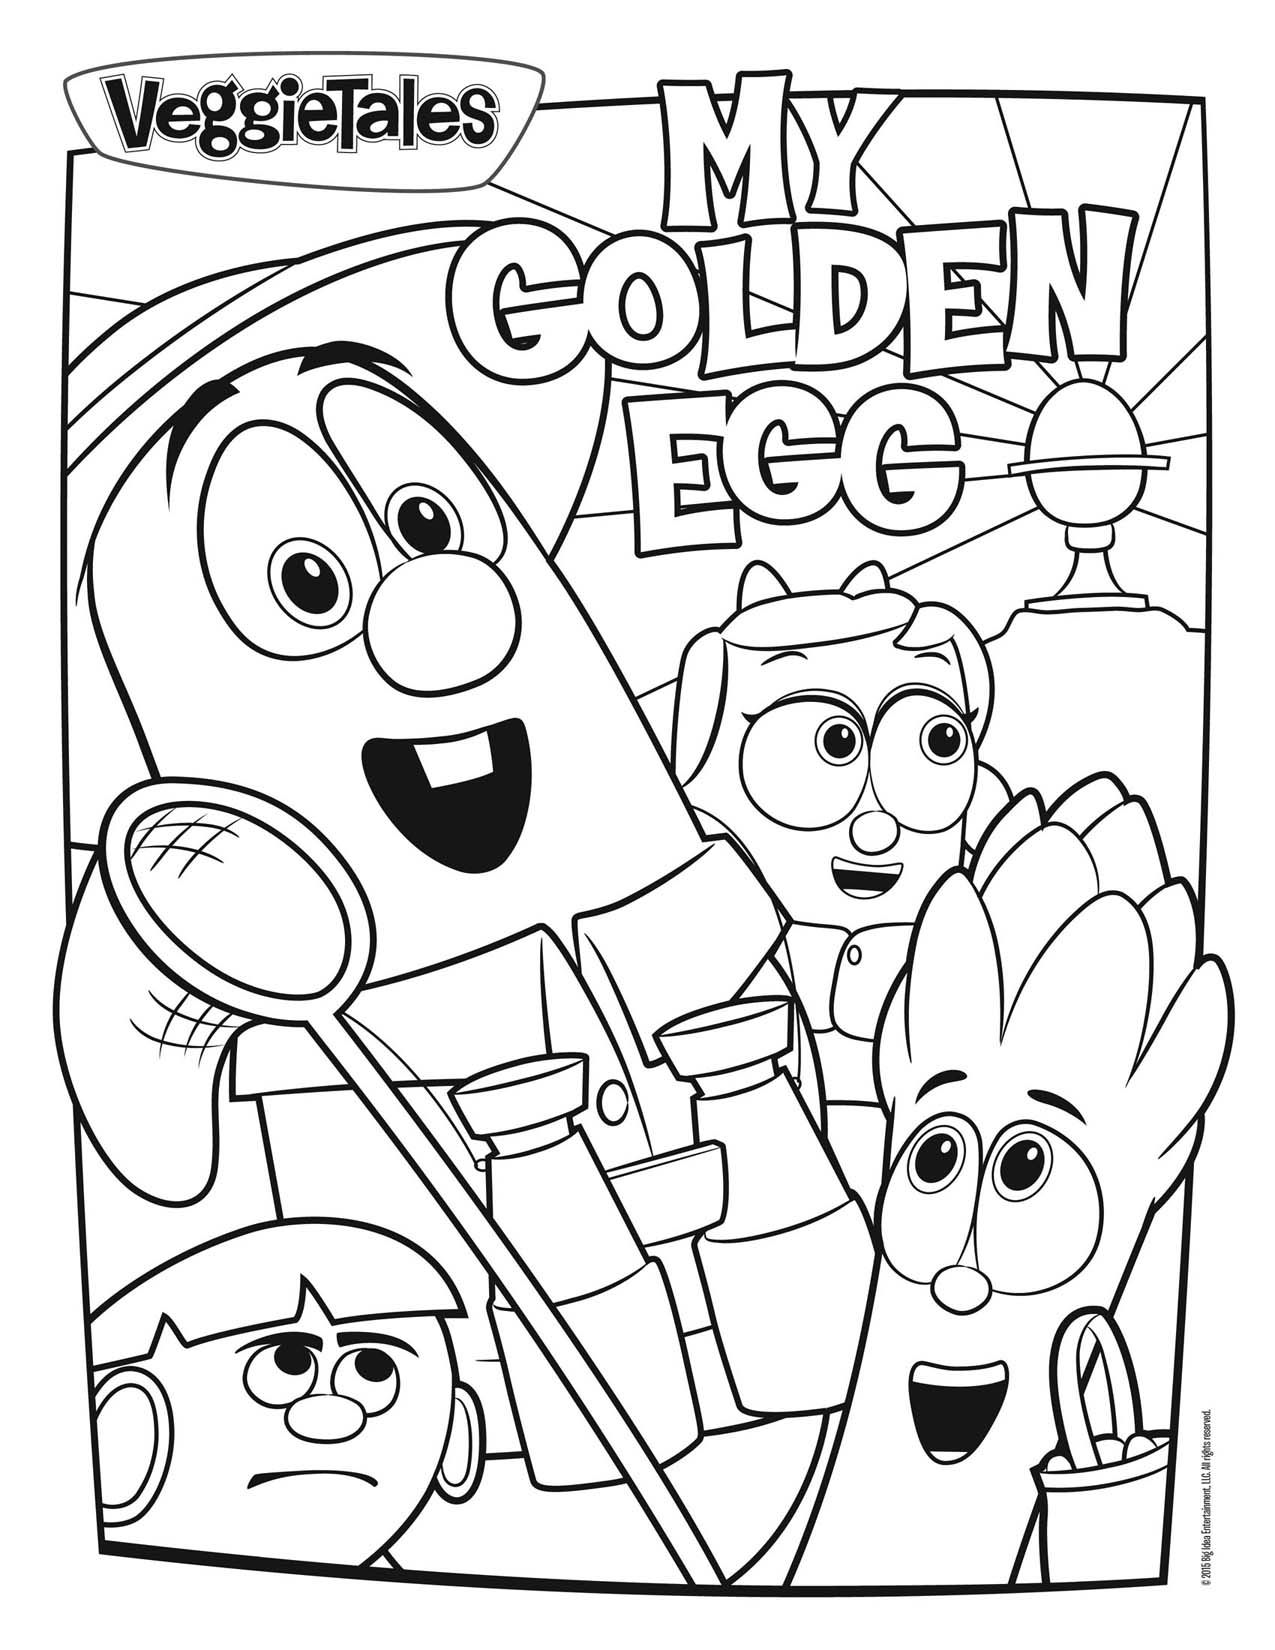 free veggie tale coloring pages - photo#21